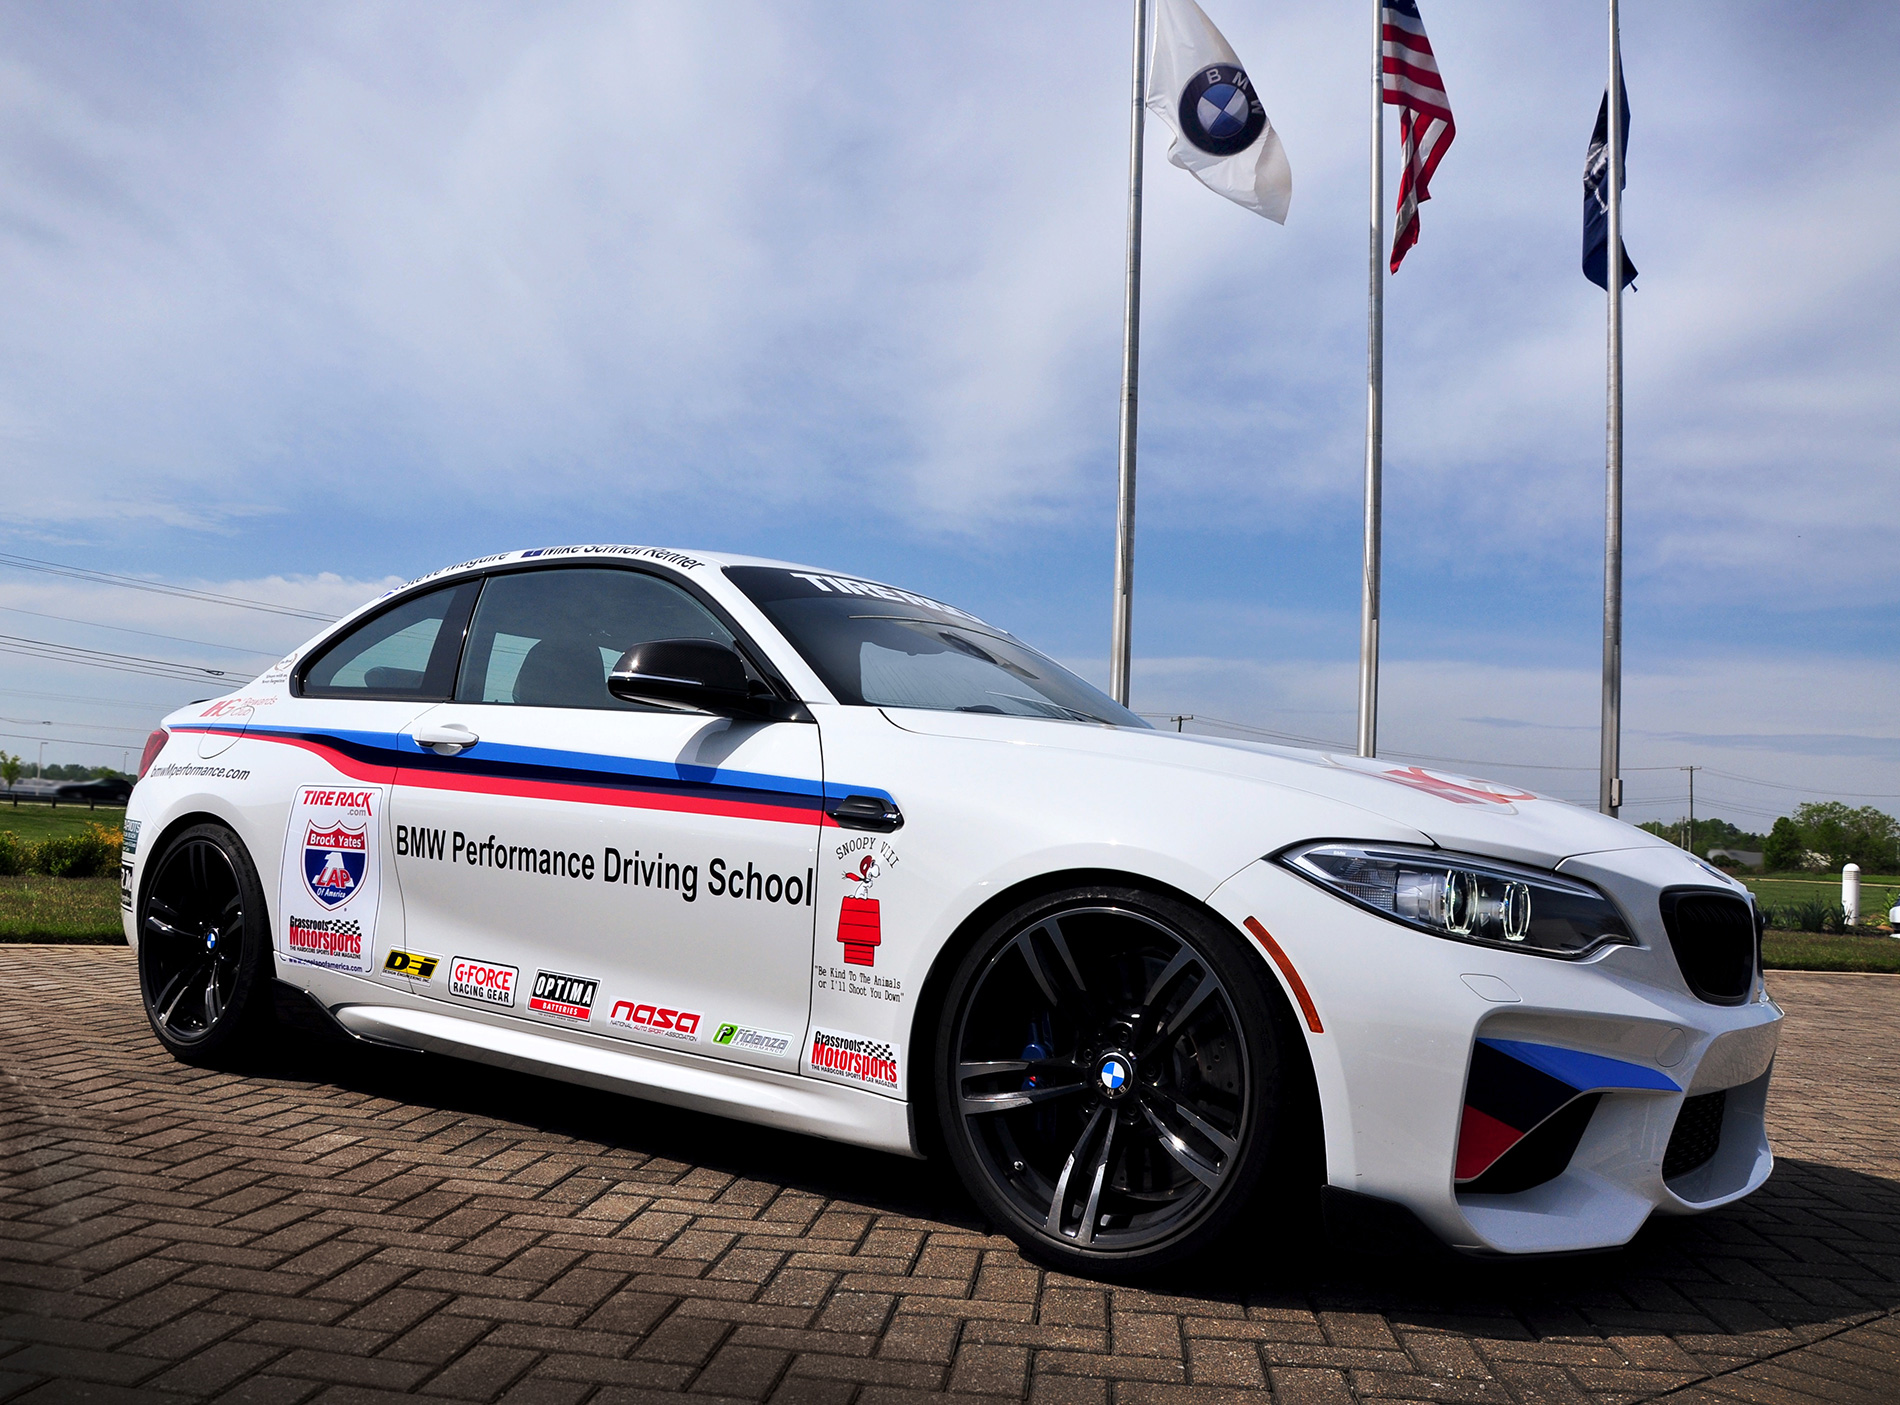 Bmw Performance Center >> The Bmw Performance Center To Contest The 2016 One Lap Of America